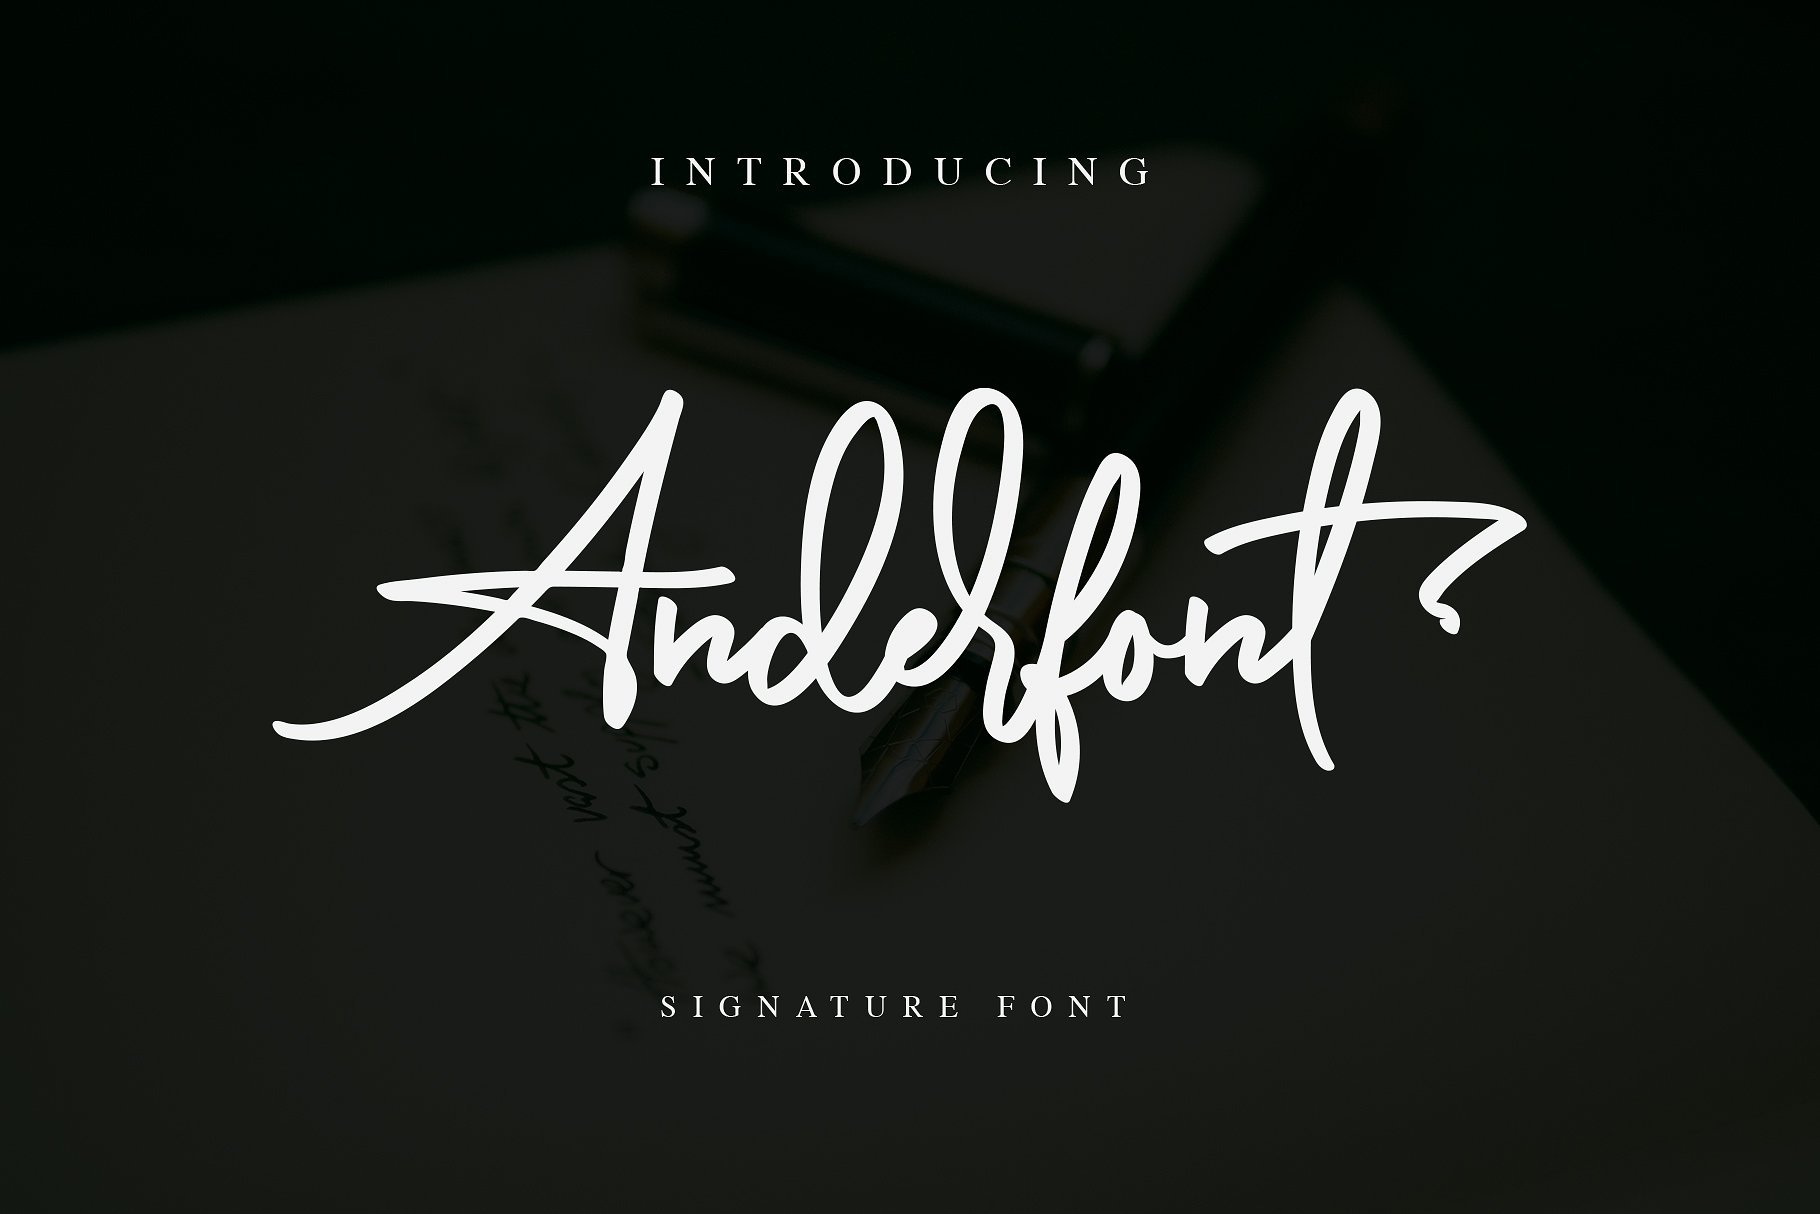 https://fontclarity.com/wp-content/uploads/2019/09/anderfont-signature-font-download-0.jpg Free Download